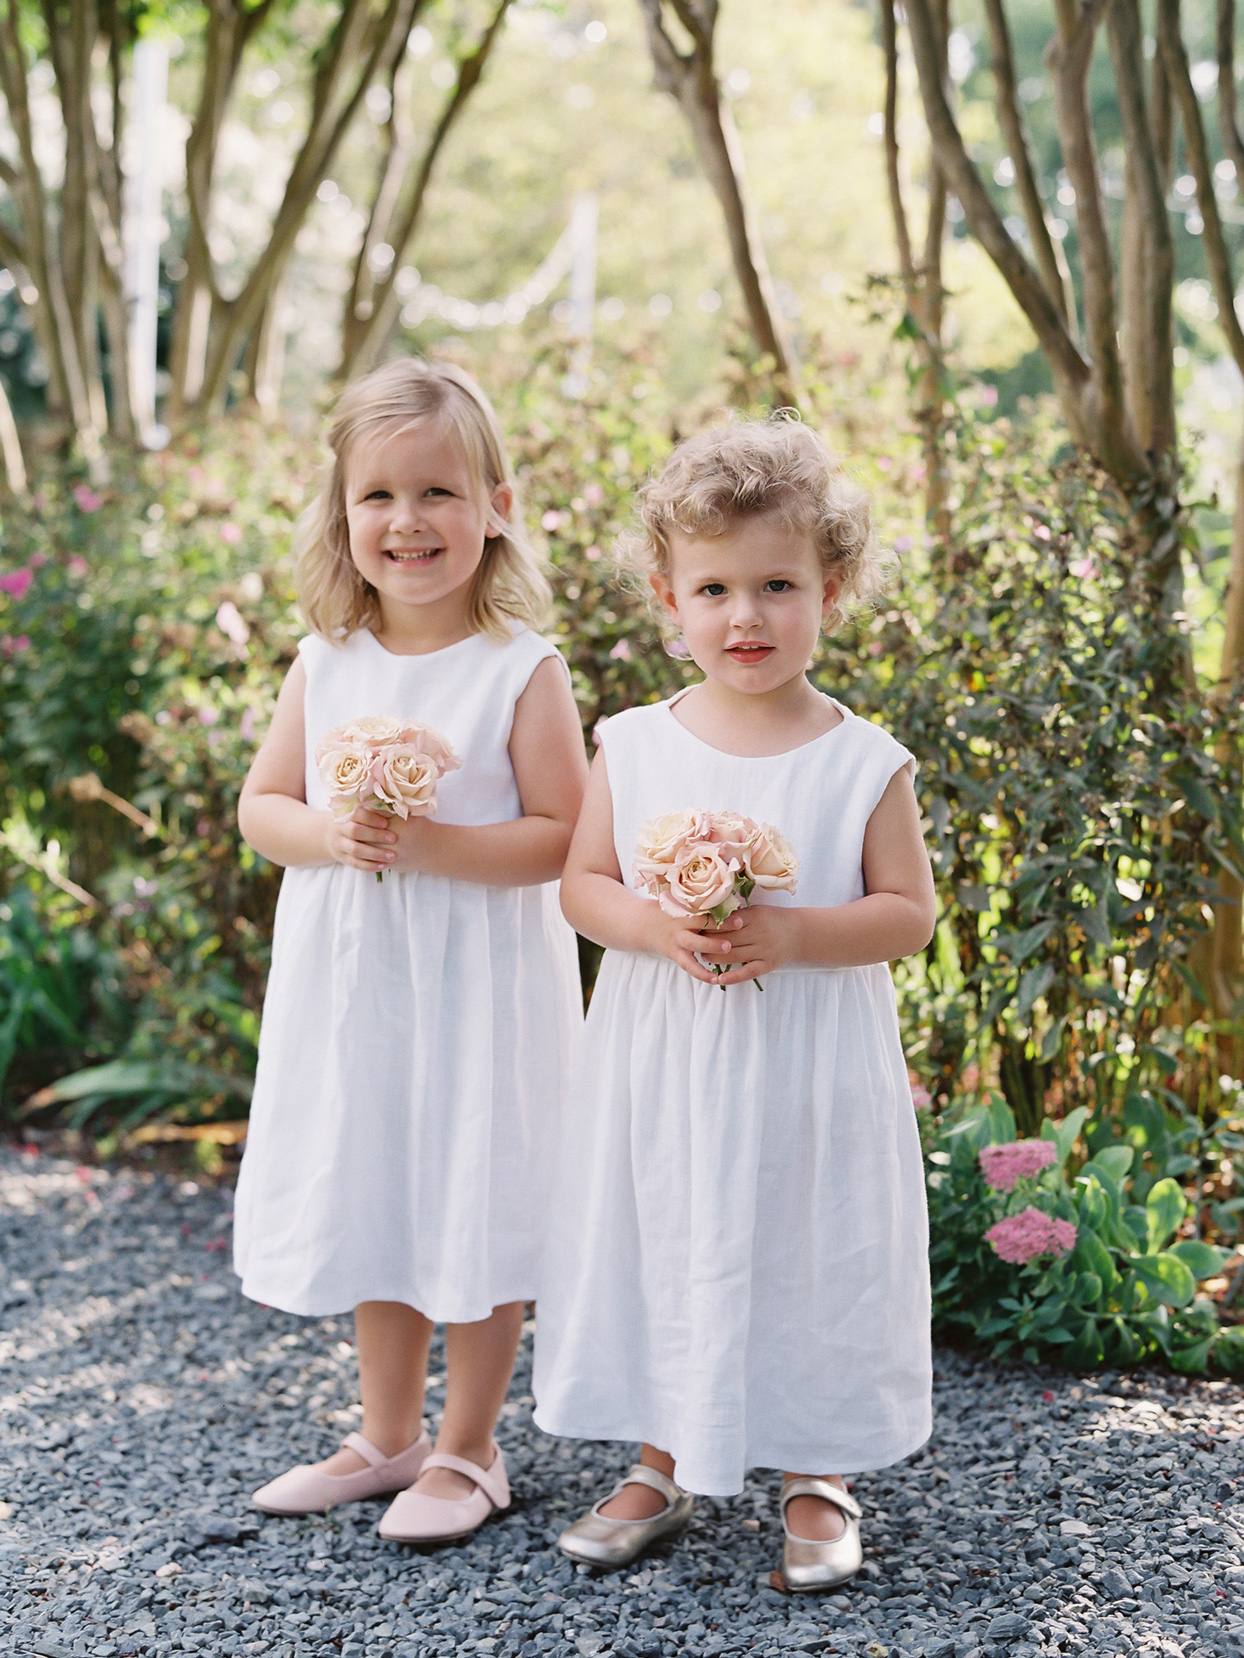 Flower girls wearing white linen dresses and carrying nosegays of roses